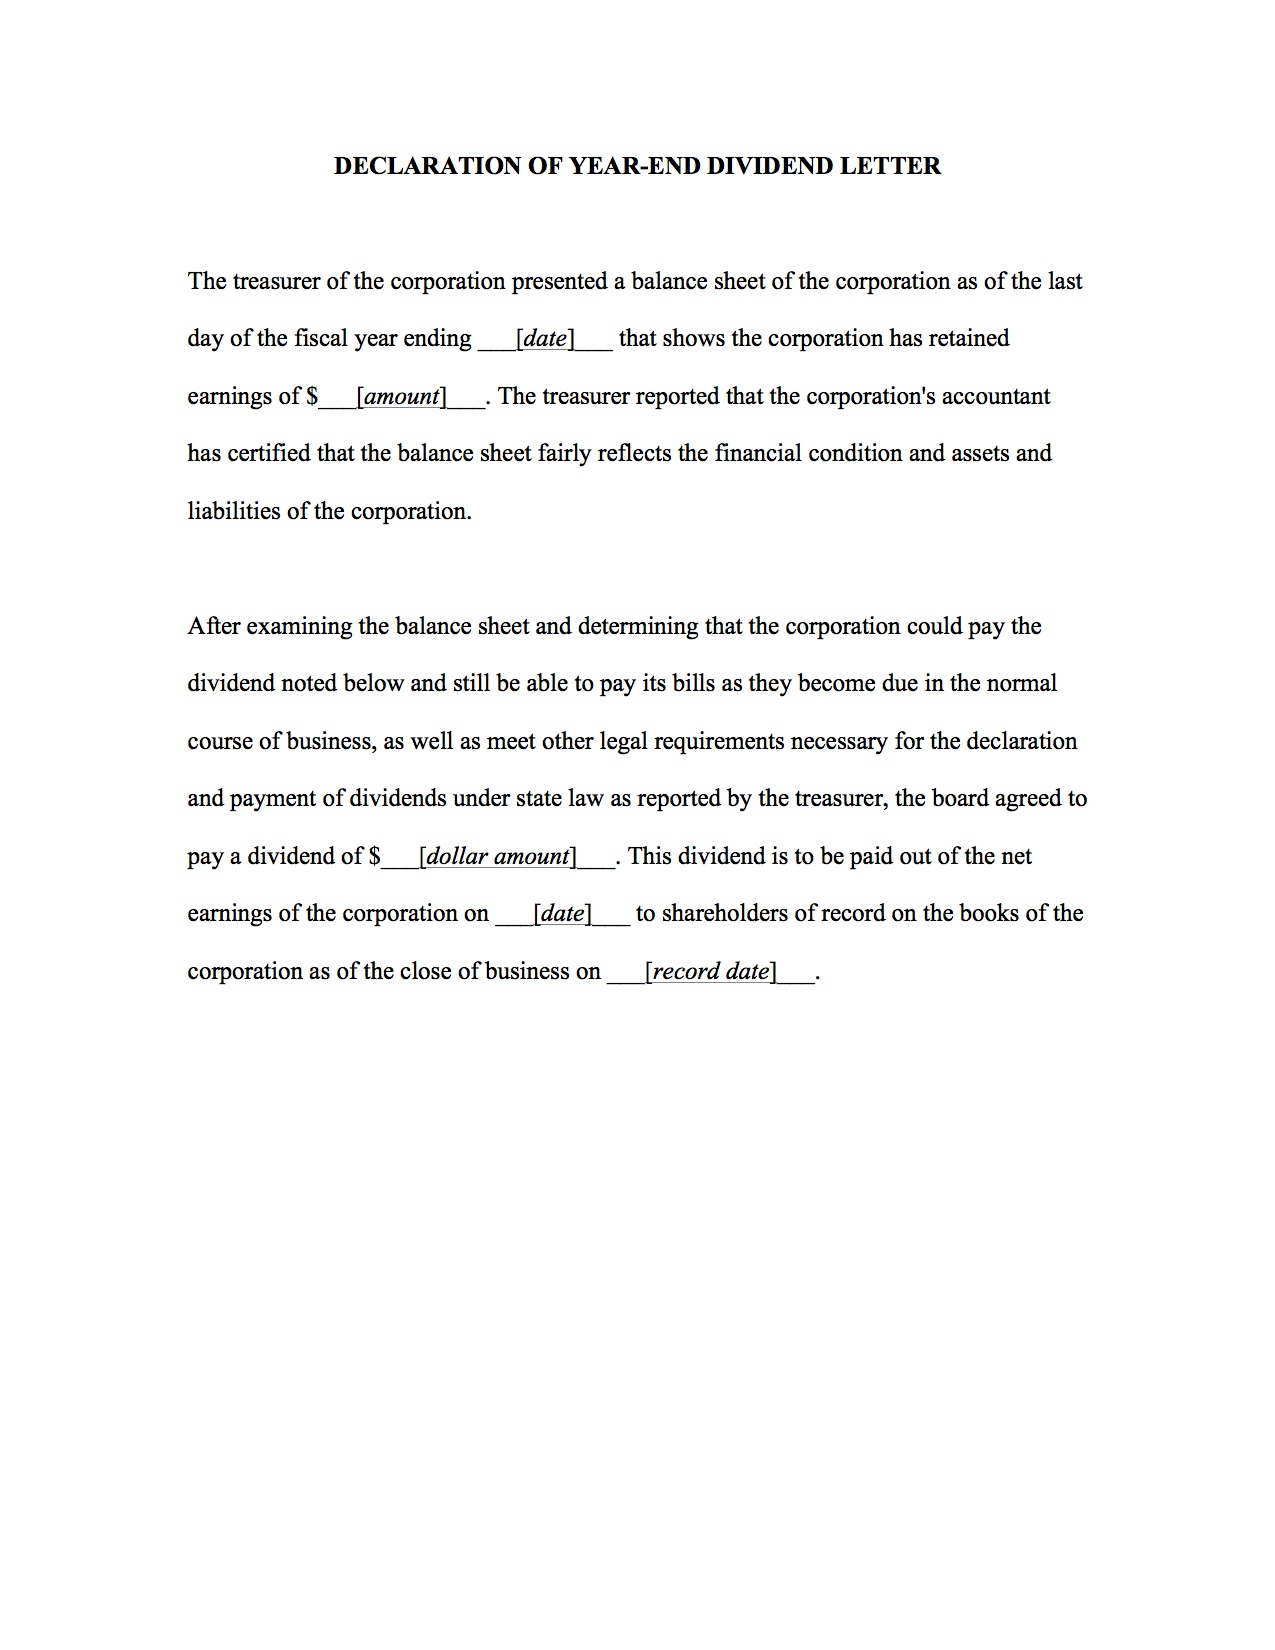 Declaration Of Year End Dividend Letter Template